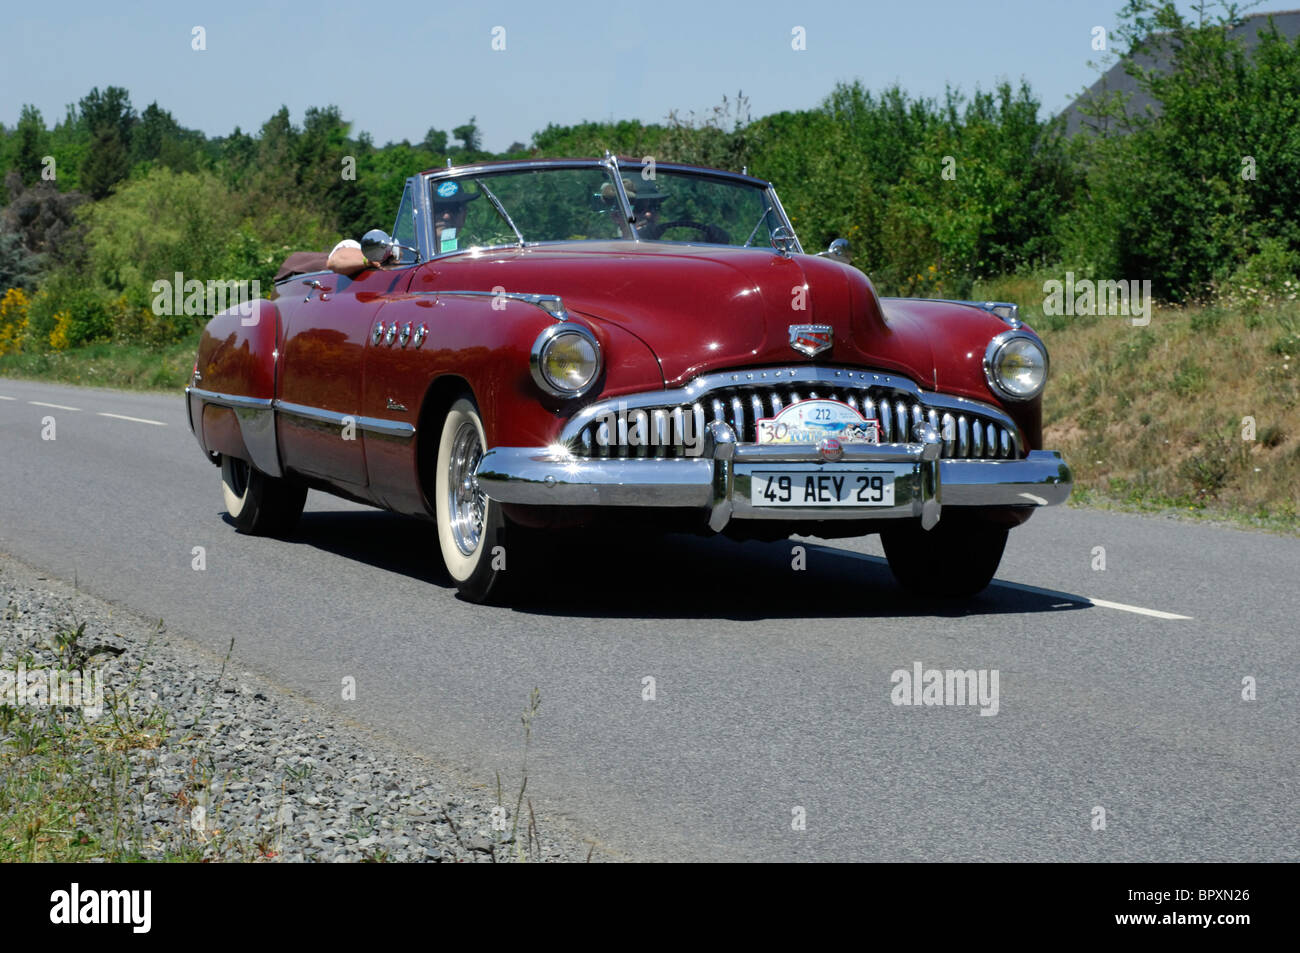 buick roadmaster 1949 in the tour de bretagne classic car rally stock photo royalty free. Black Bedroom Furniture Sets. Home Design Ideas